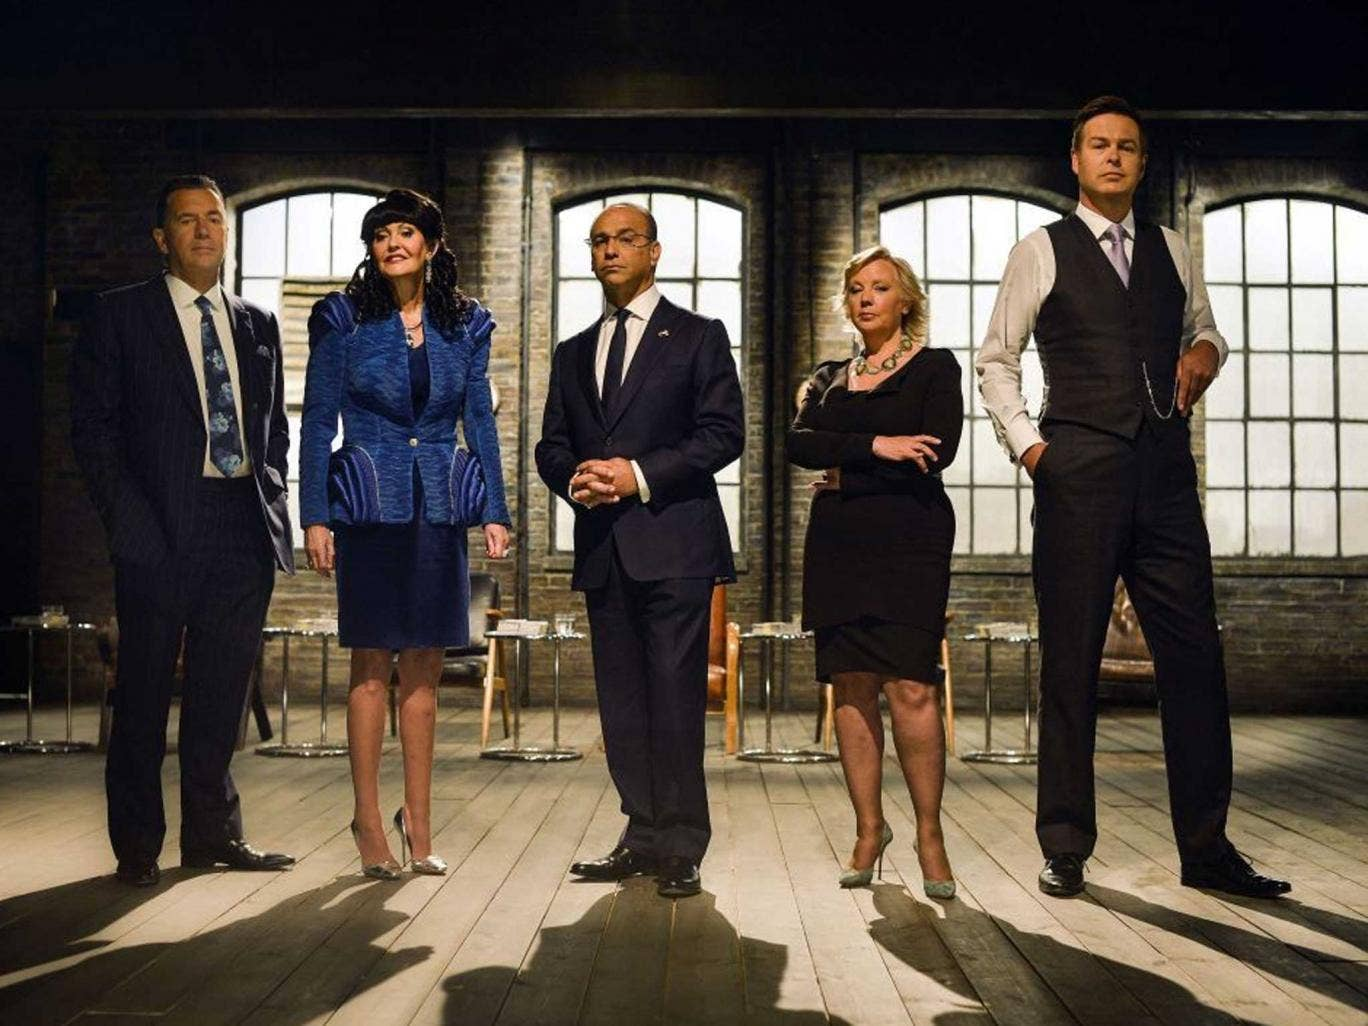 Crowdfunding is staging its own version of Dragons' Den on TV